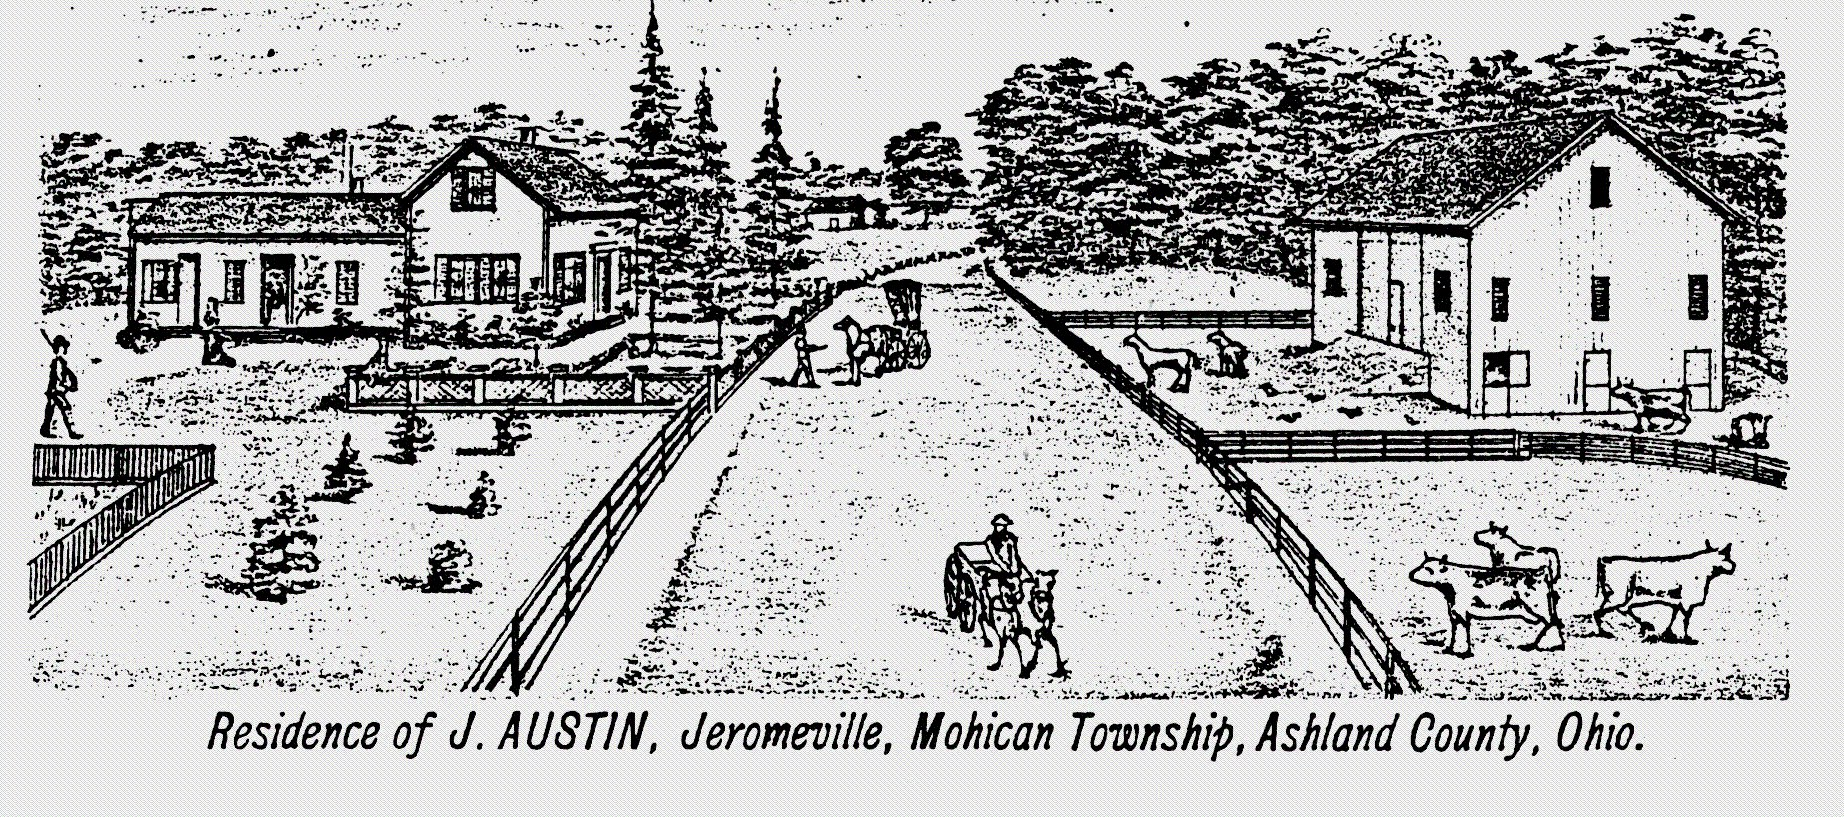 Artist's drawing of the J. Austen residence, Jeromesville, Ohio